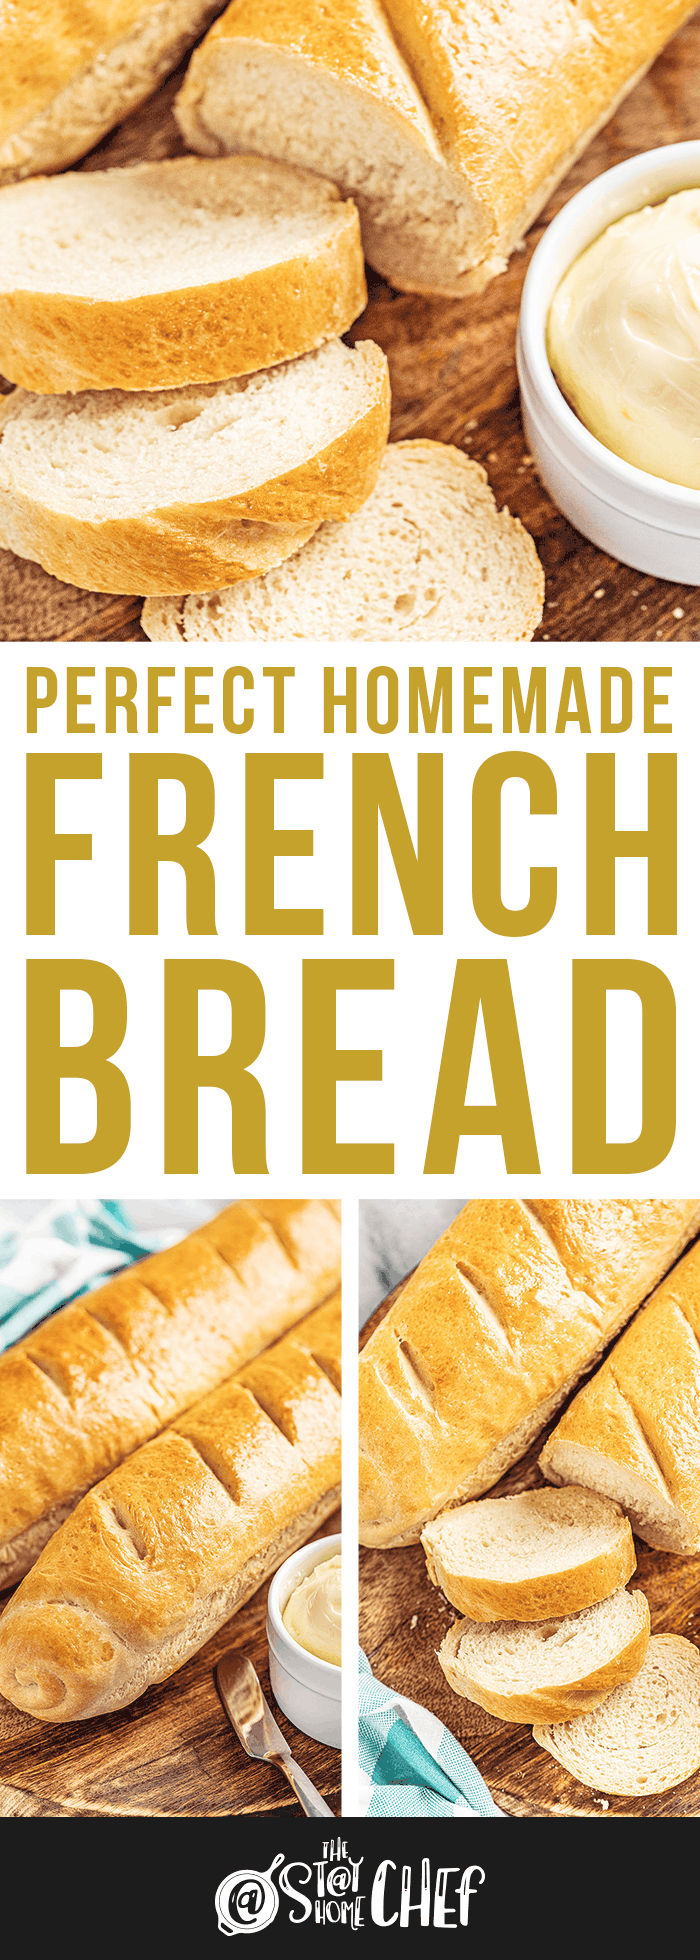 A sliced loaf of French bread